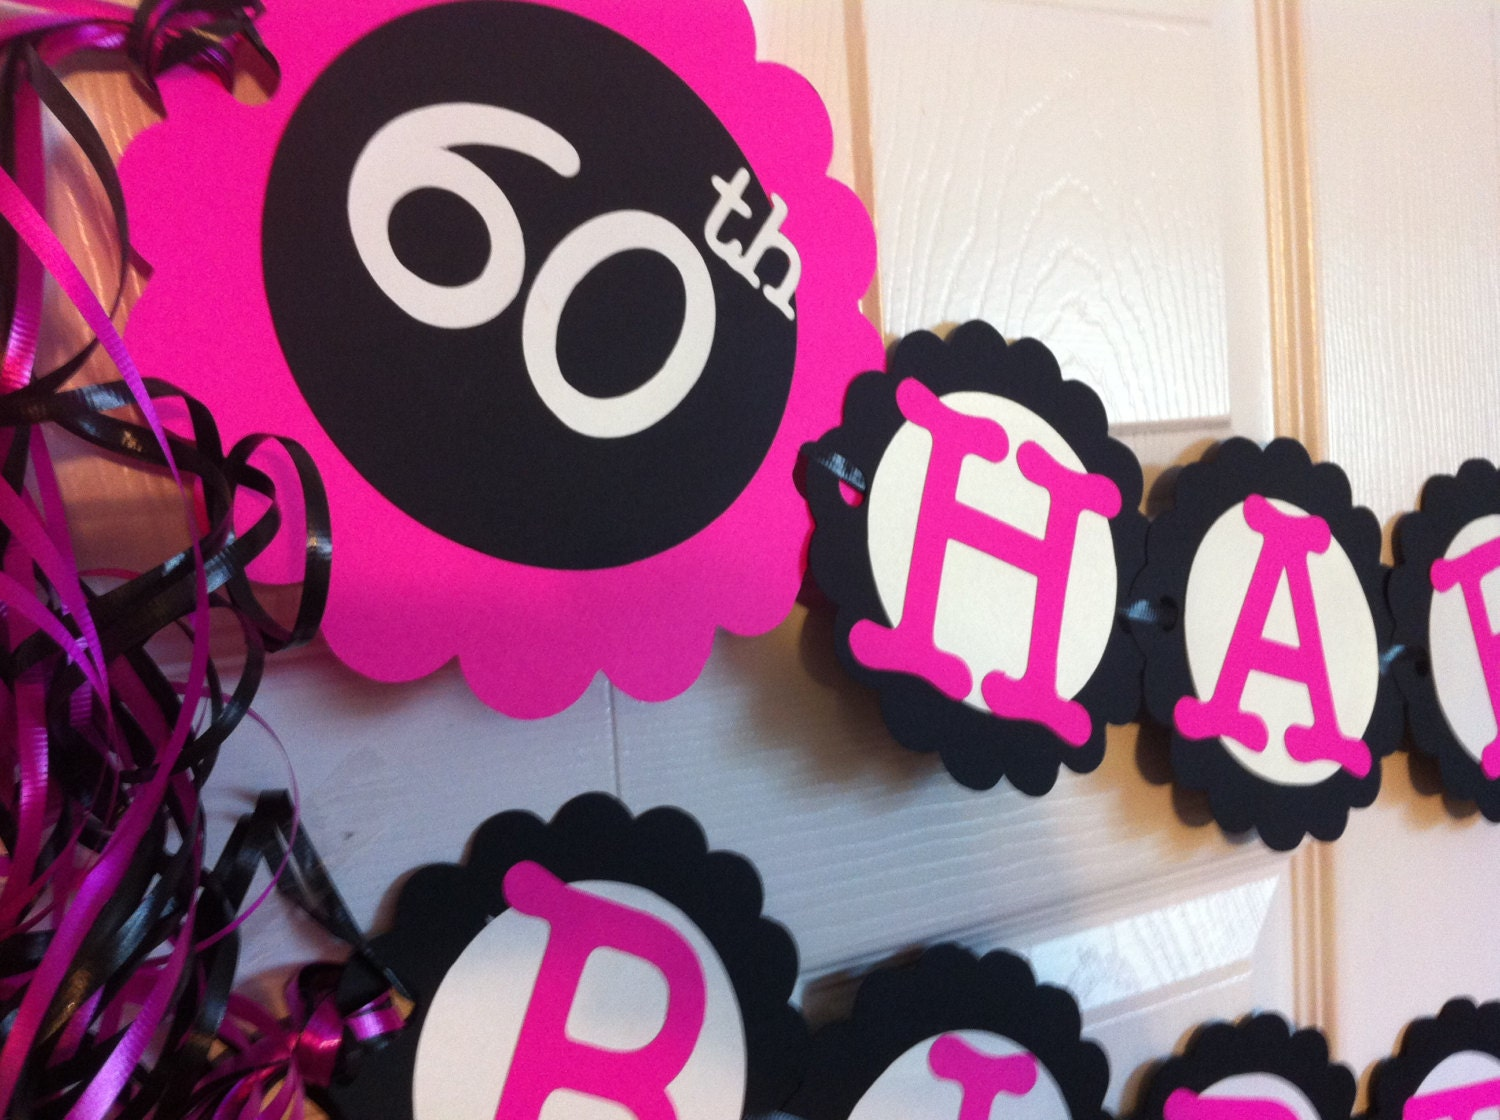 60th birthday decorations personalization available for 60th birthday party decoration